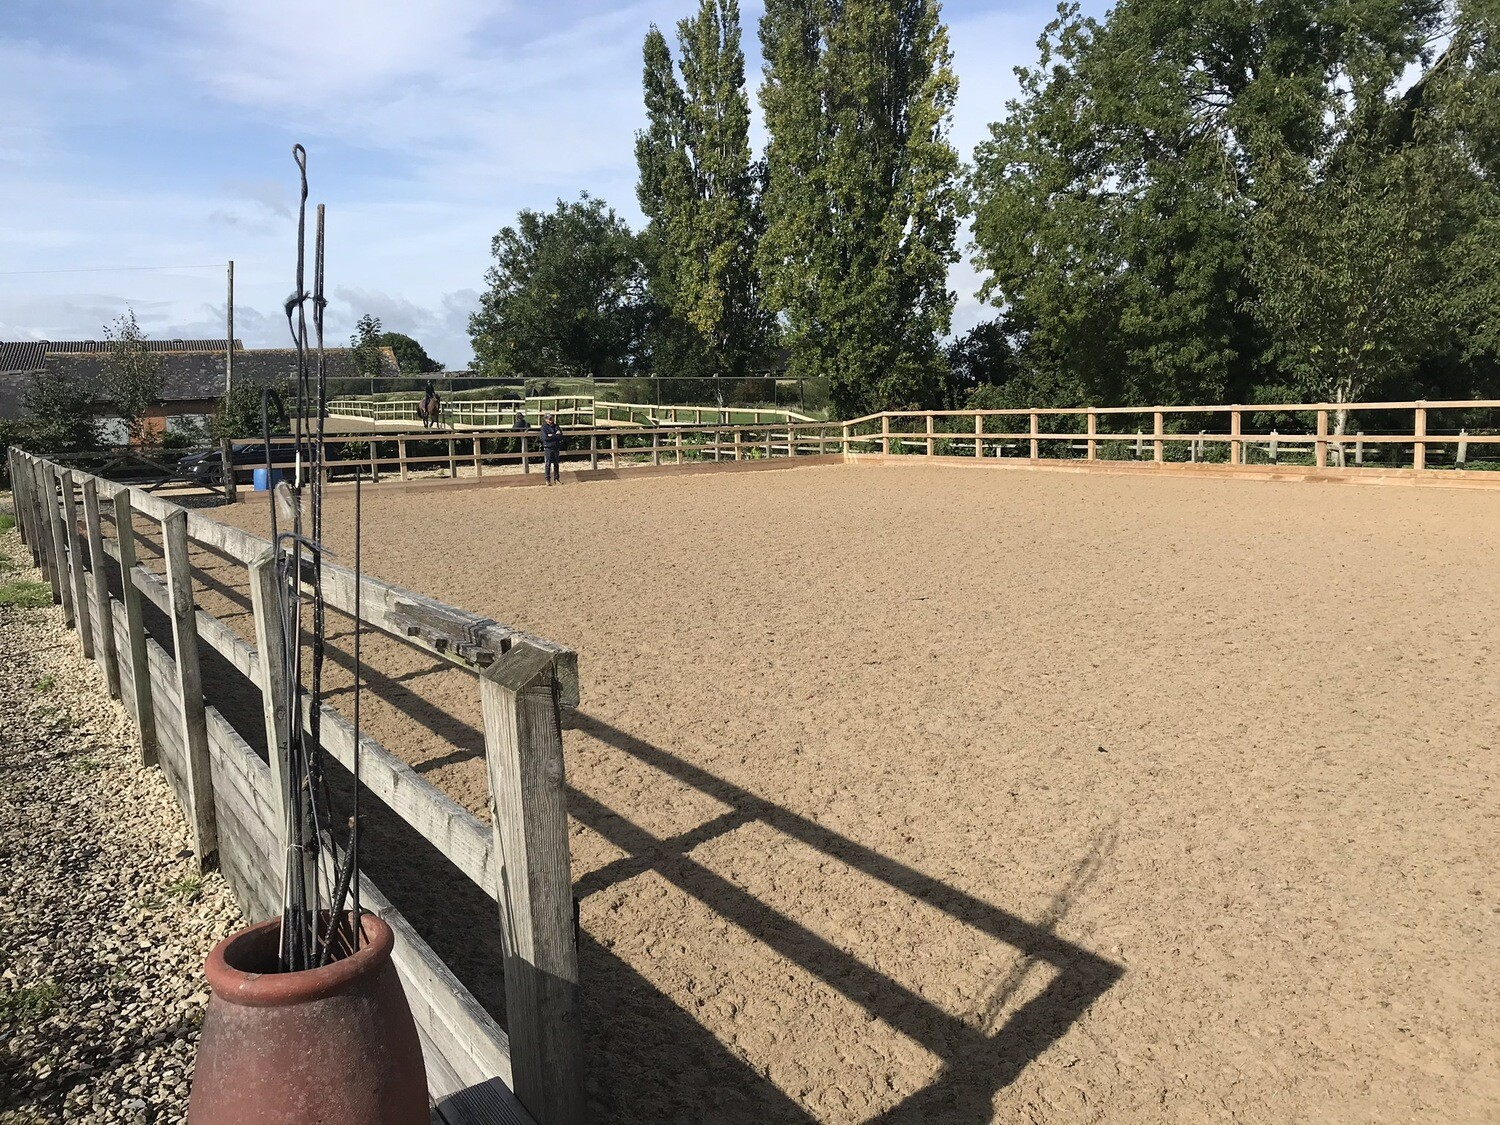 Testt Rider Symmetry Assessment: 60 Minutes : October 30th : Hosted By Michael Whippey At Idstone Farm Stables ( Please Do Not Use Link Unless On Mike's List )